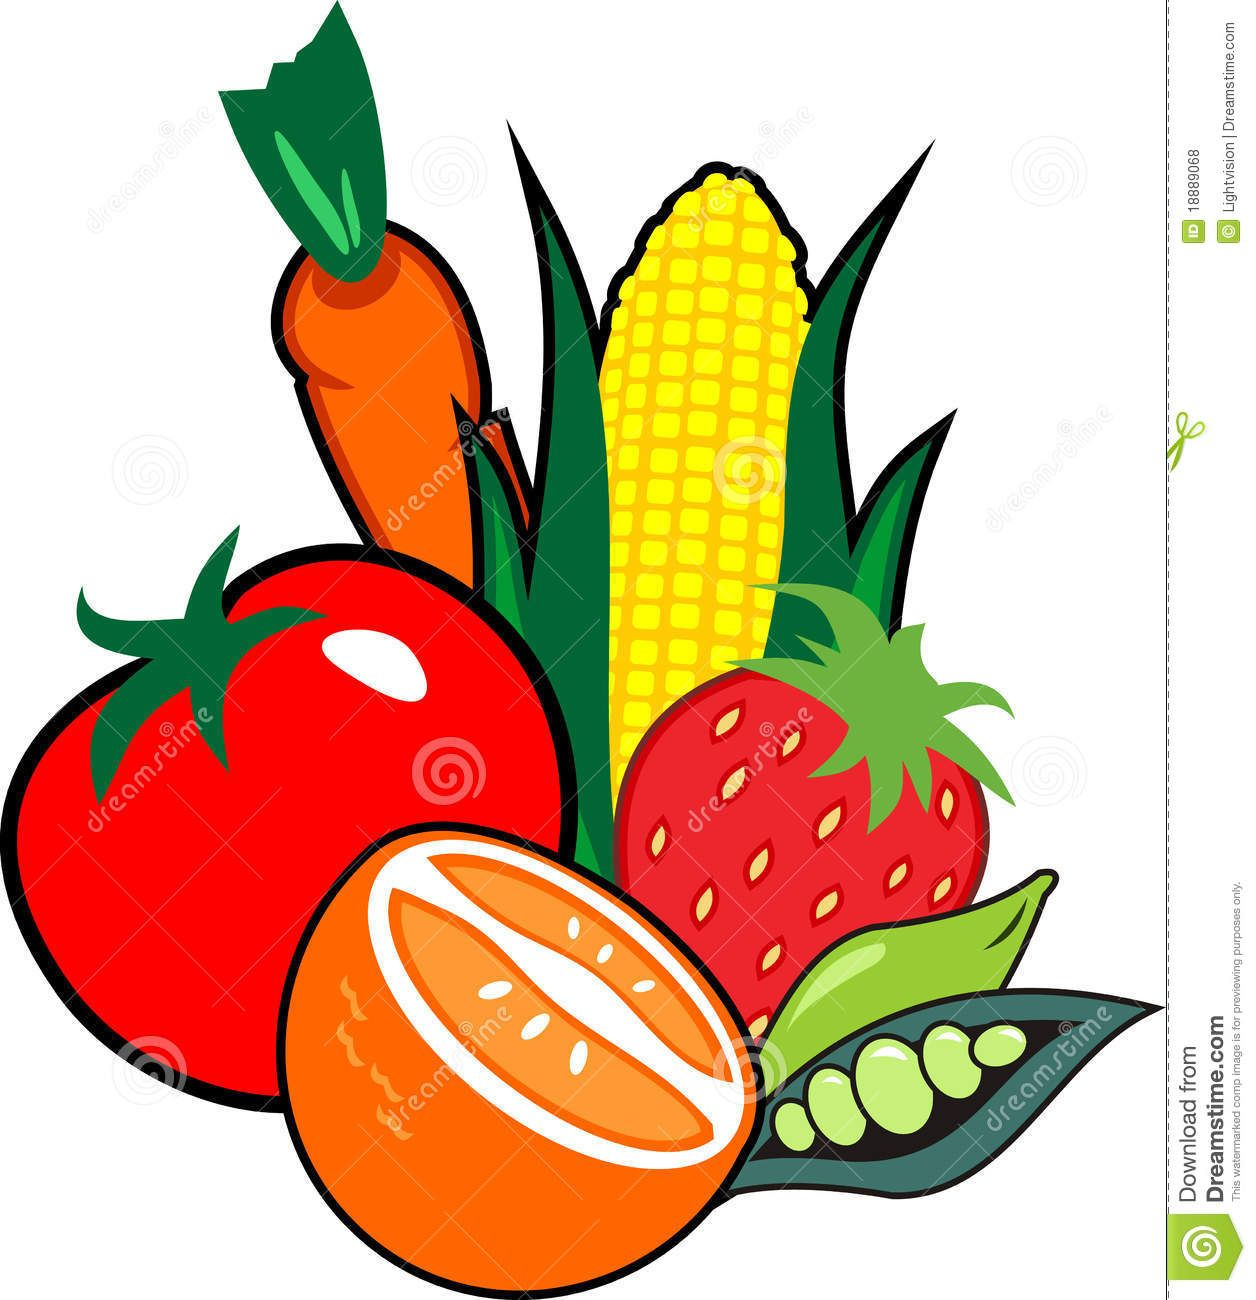 fruit and veggie clipart at getdrawings com free for personal use rh getdrawings com vegetable clipart images vegetable clipart images